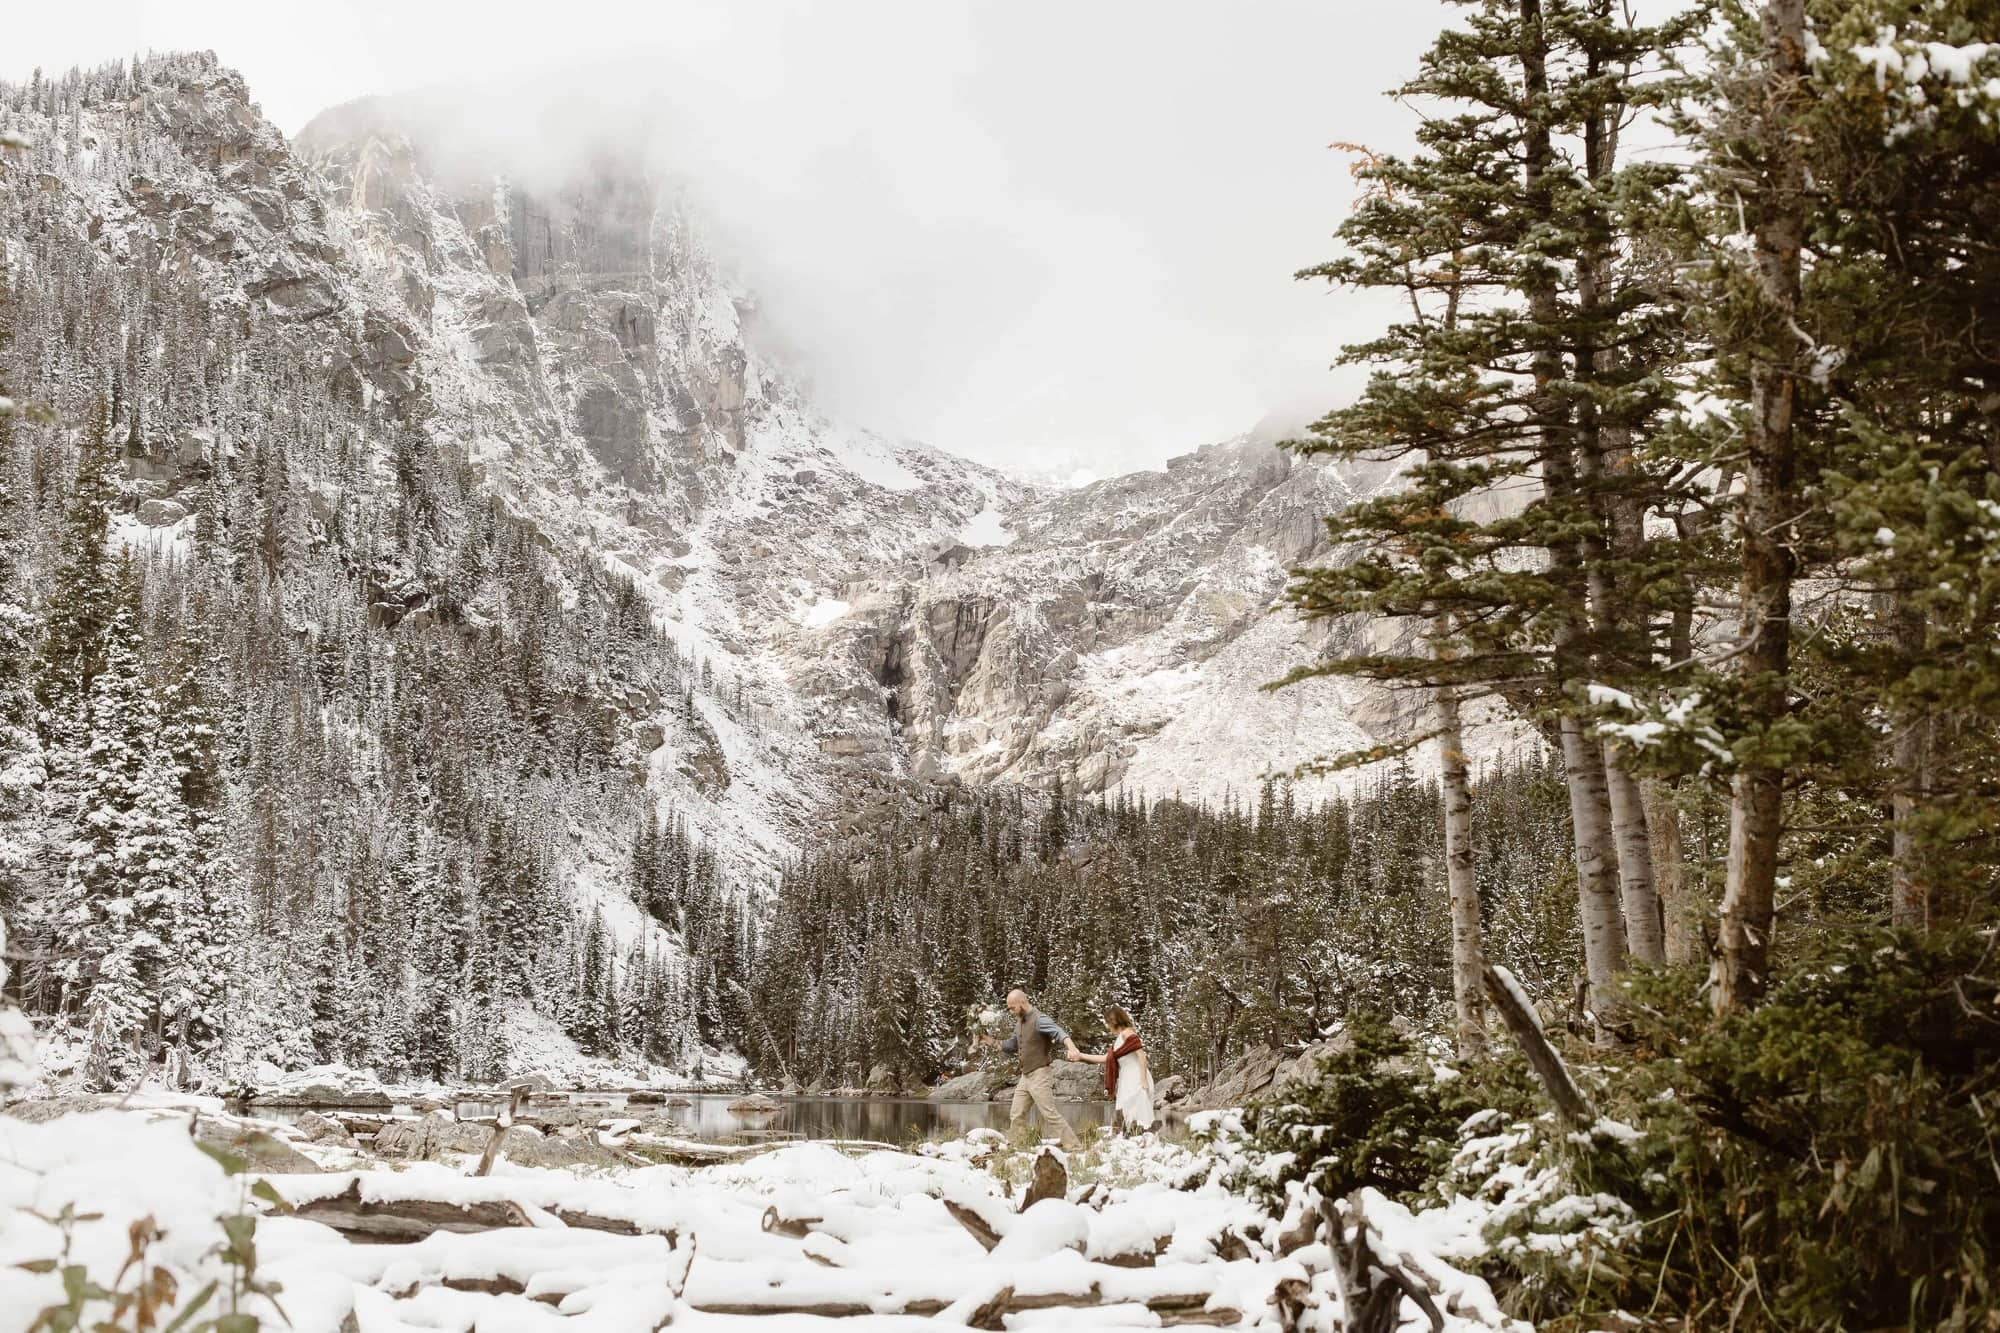 Rocky Mountain Adventure Elopement in Rocky Mountain Alpine Lake, Dream lake, Estes Park Colorado